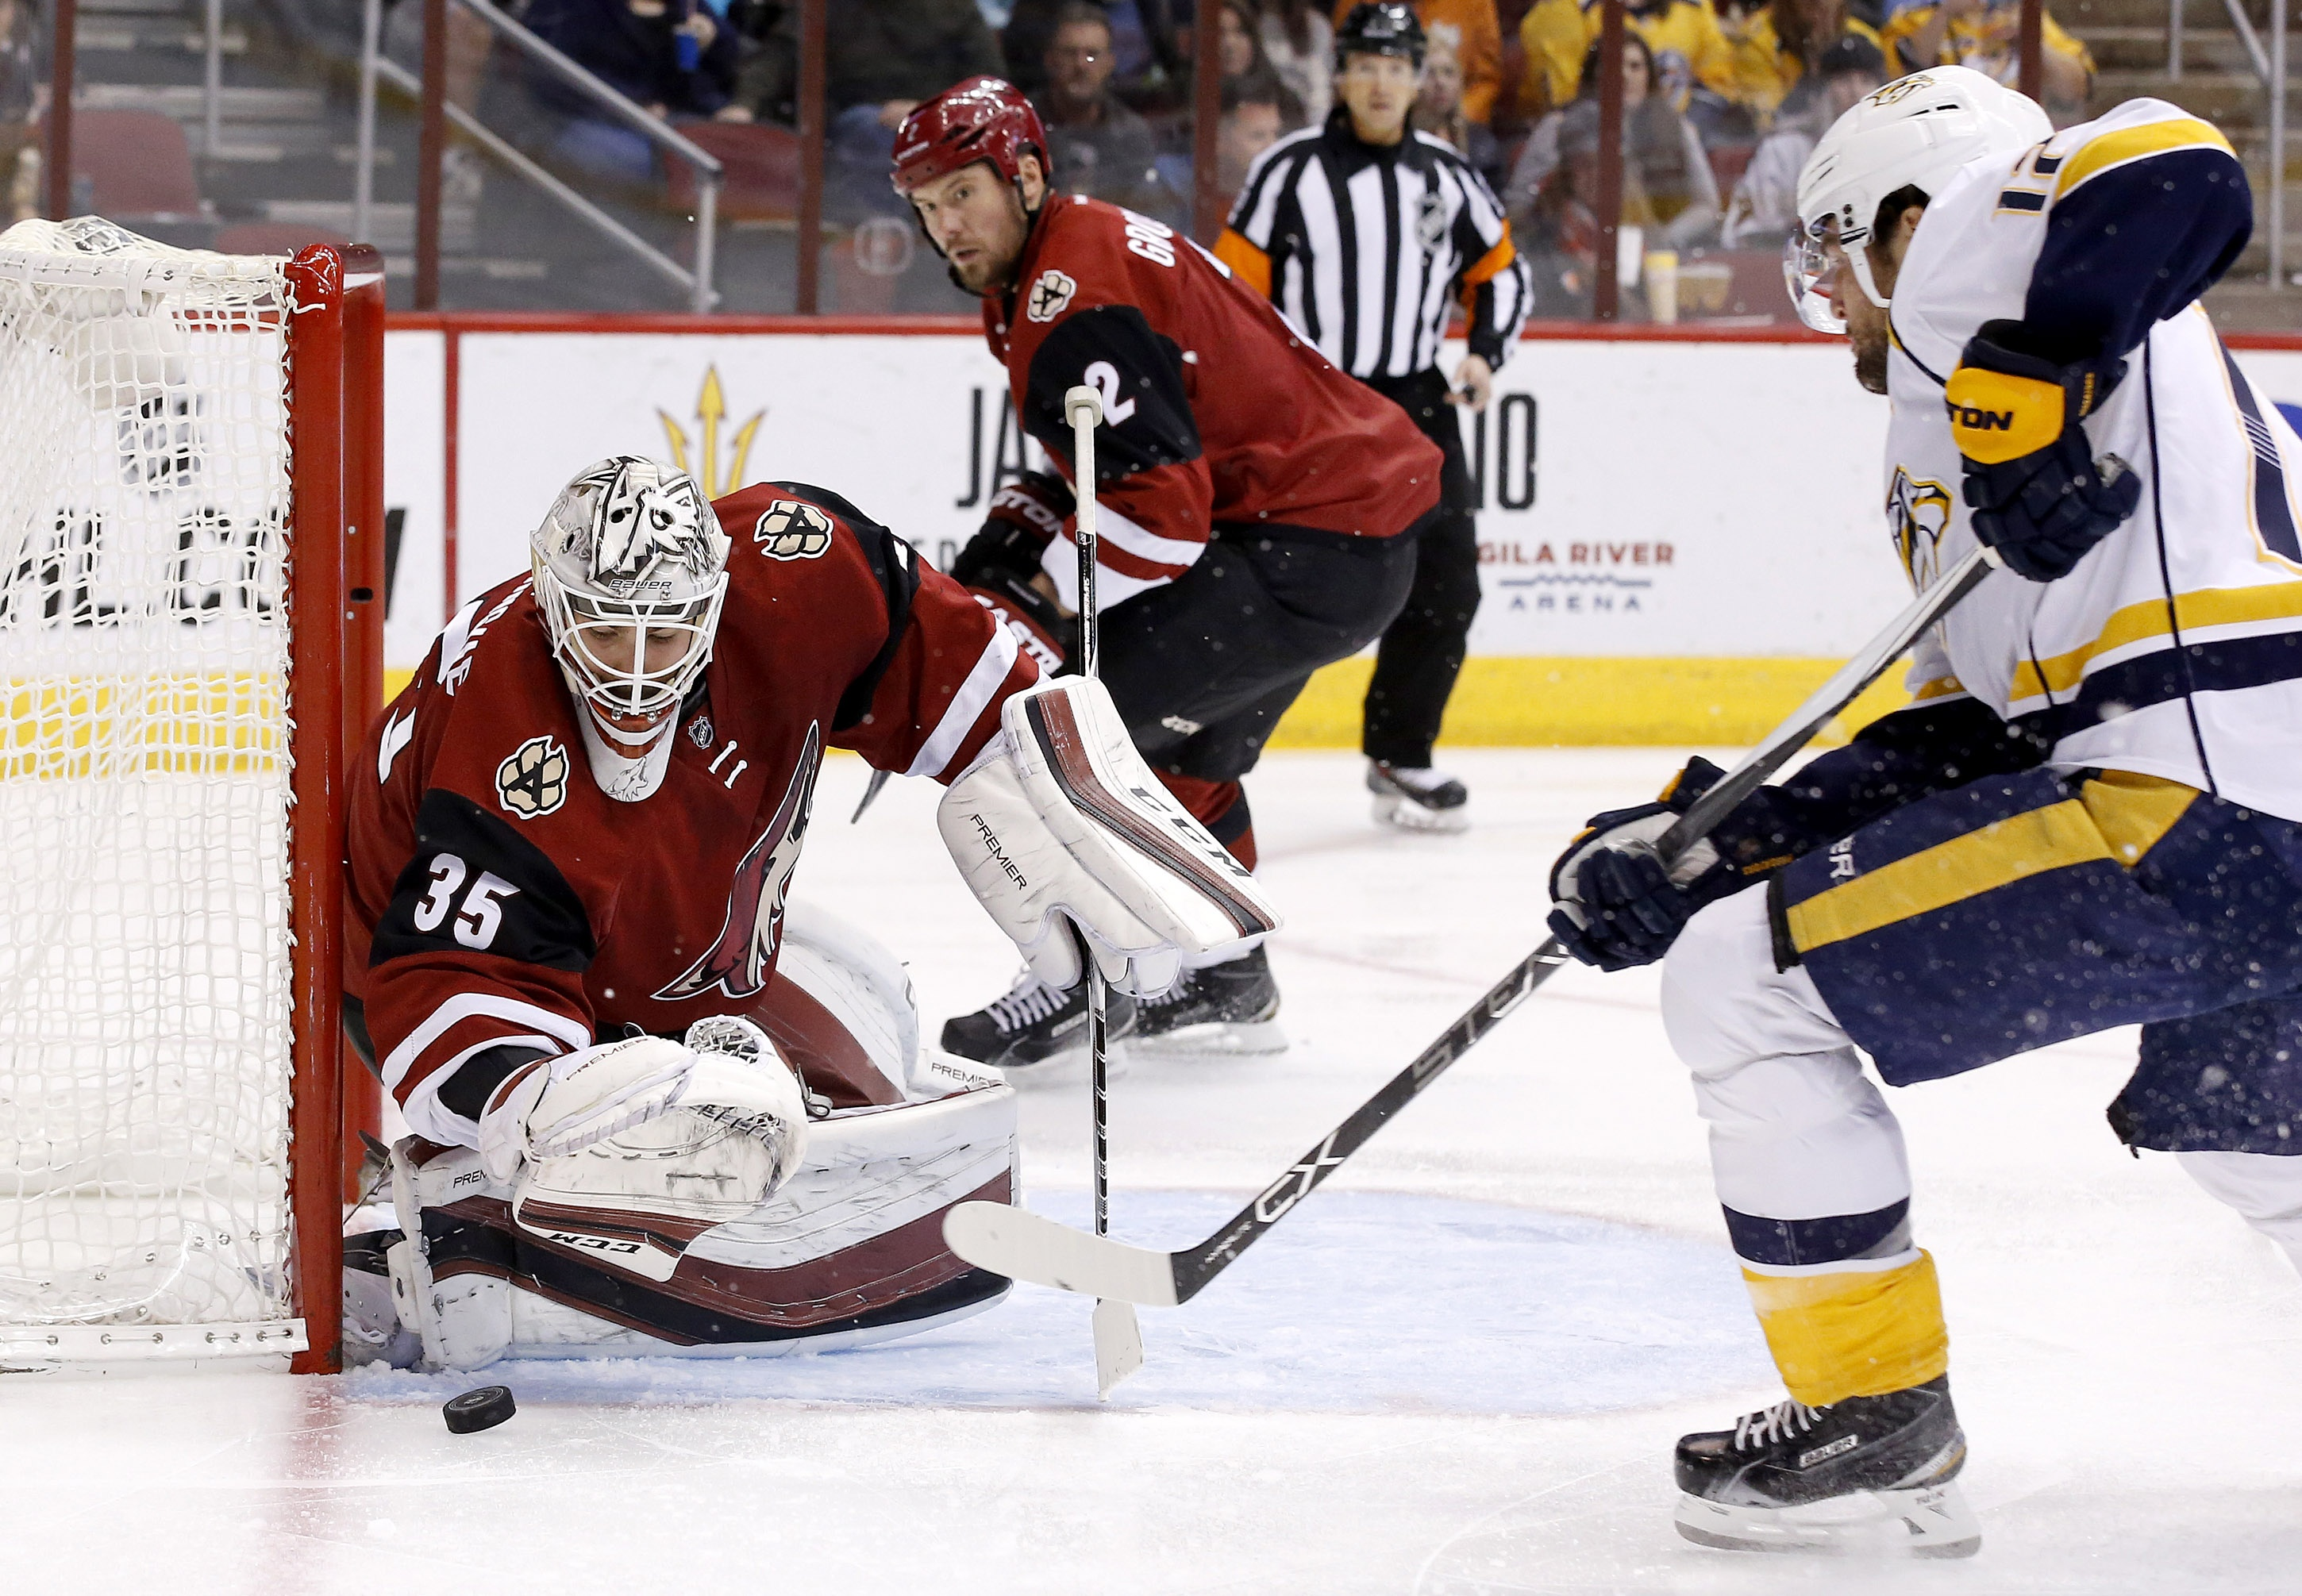 Arizona Coyotes' Louis Domingue (35) makes a save on a shot by Nashville Predators' Mike Fisher, right, as Coyotes' Nicklas Grossmann (2), of Sweden, watches during the first period of an NHL hockey game Saturday, Jan. 9, 2016, in Glendale, Ariz. (AP Phot